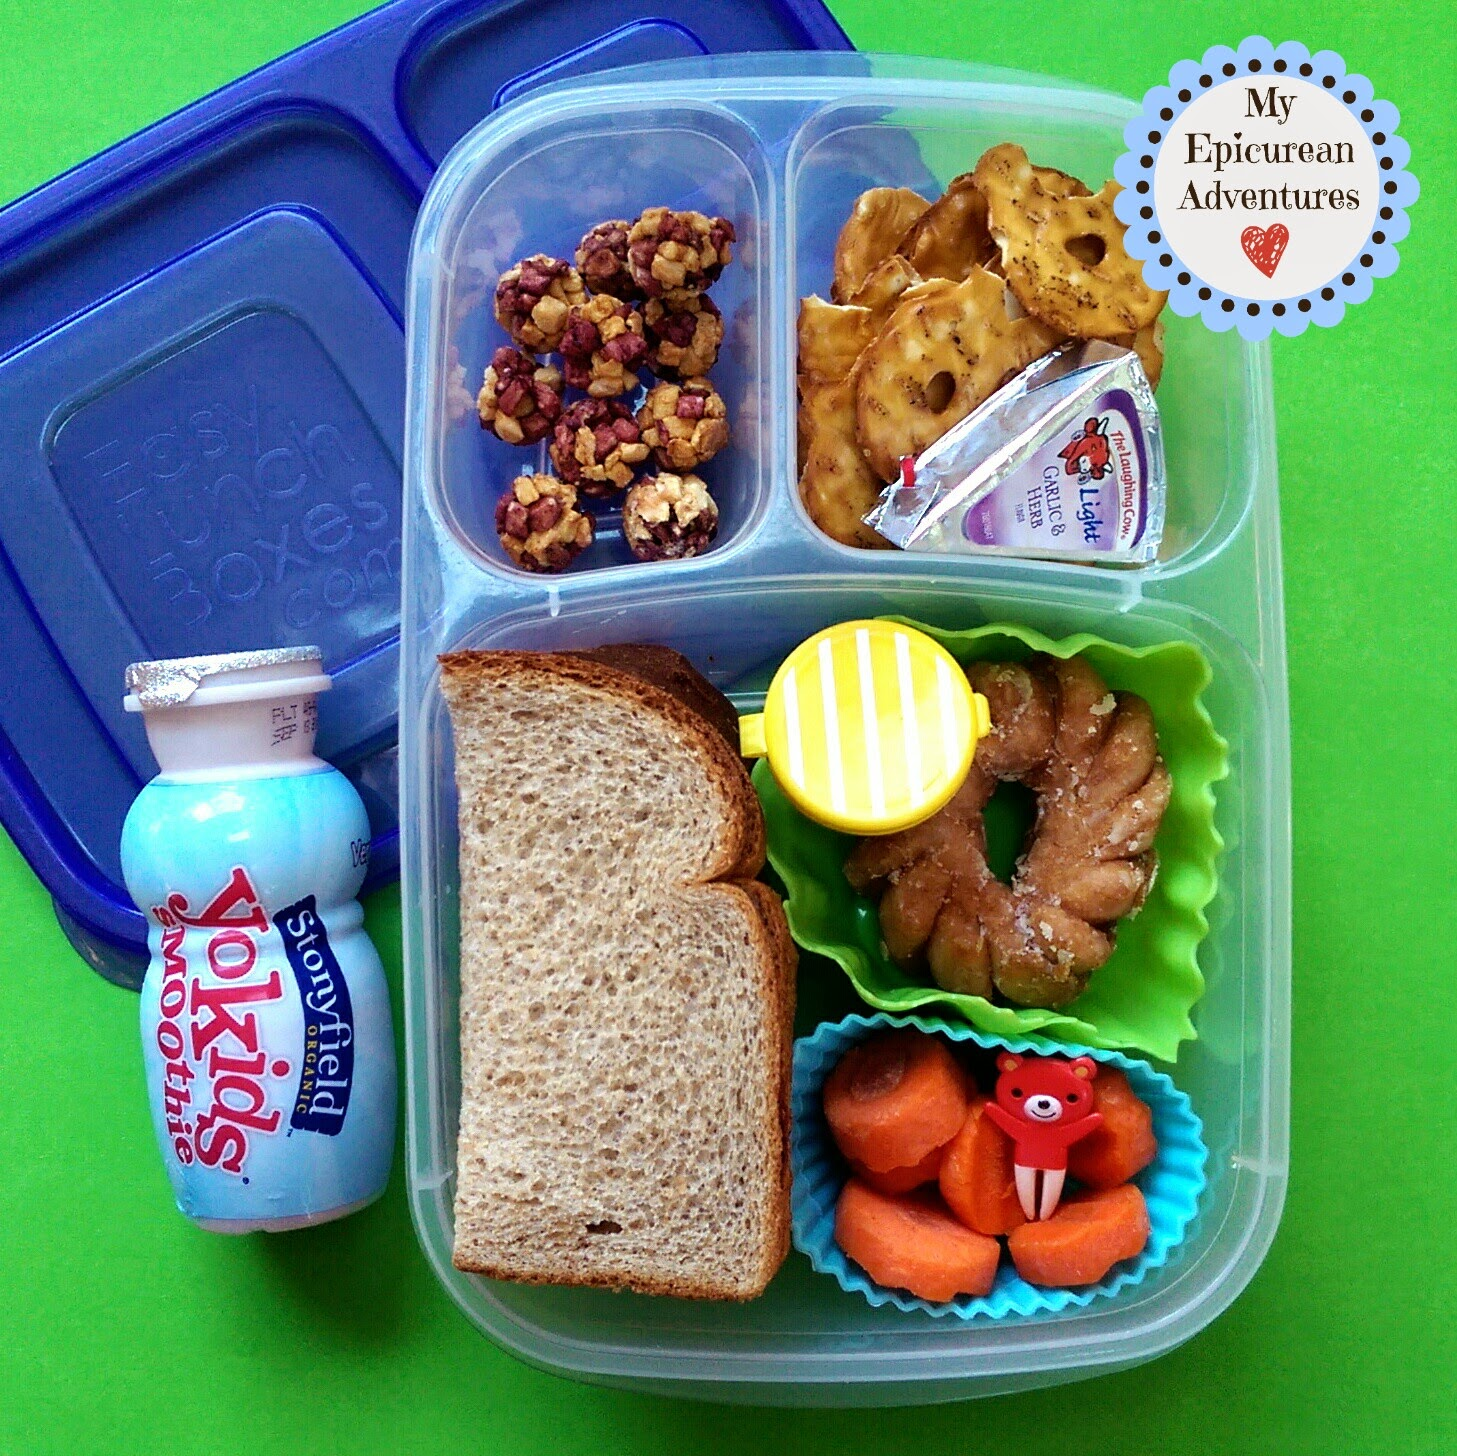 Adventures: Here's Lunch #36: Sandwiches on Sticks and a PB&J in @easylunchboxes